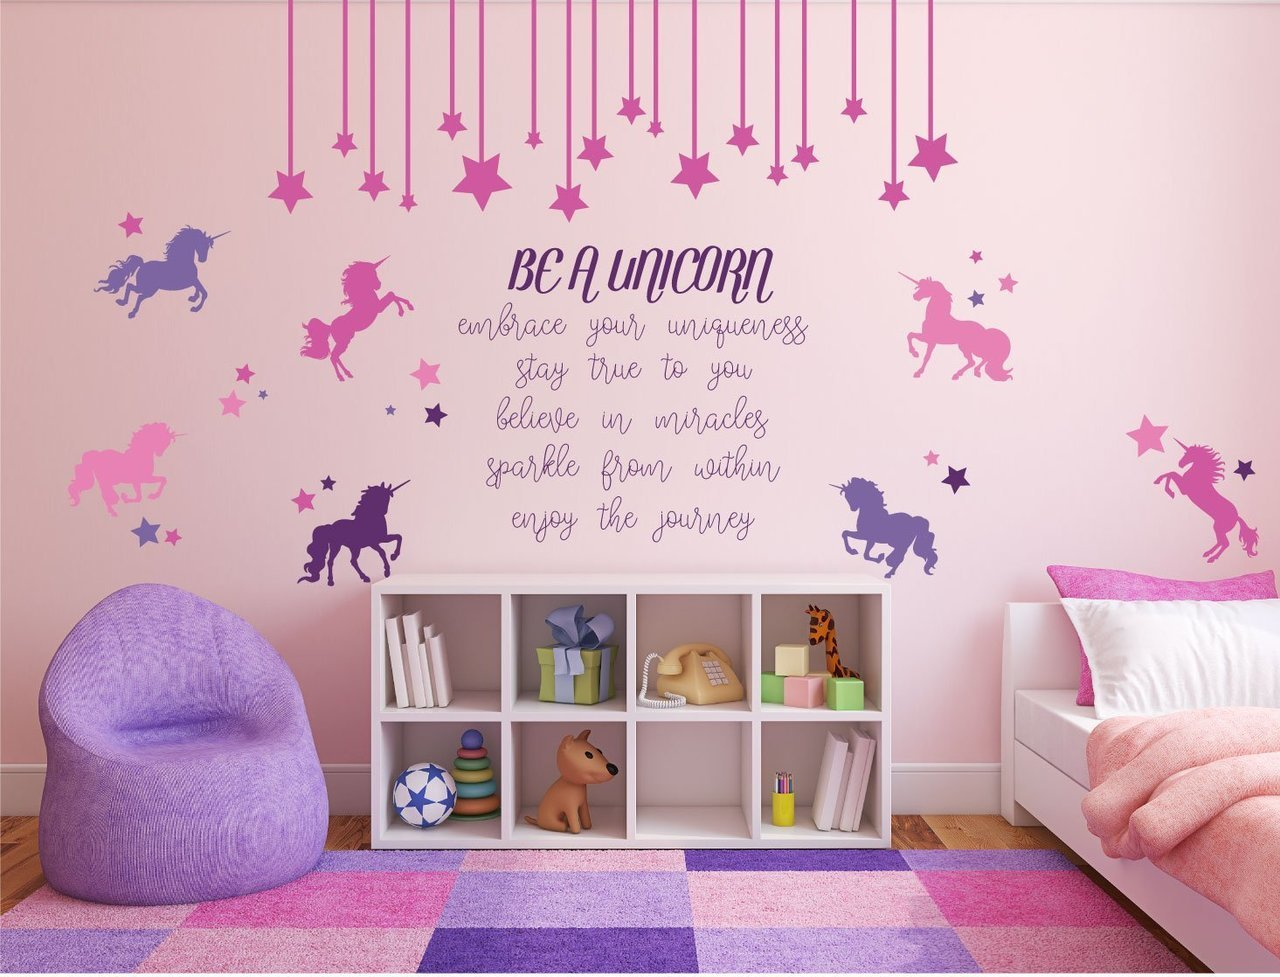 Be a unicorn full wall mural with quote unicorn and stars for Unicorn bedroom theme